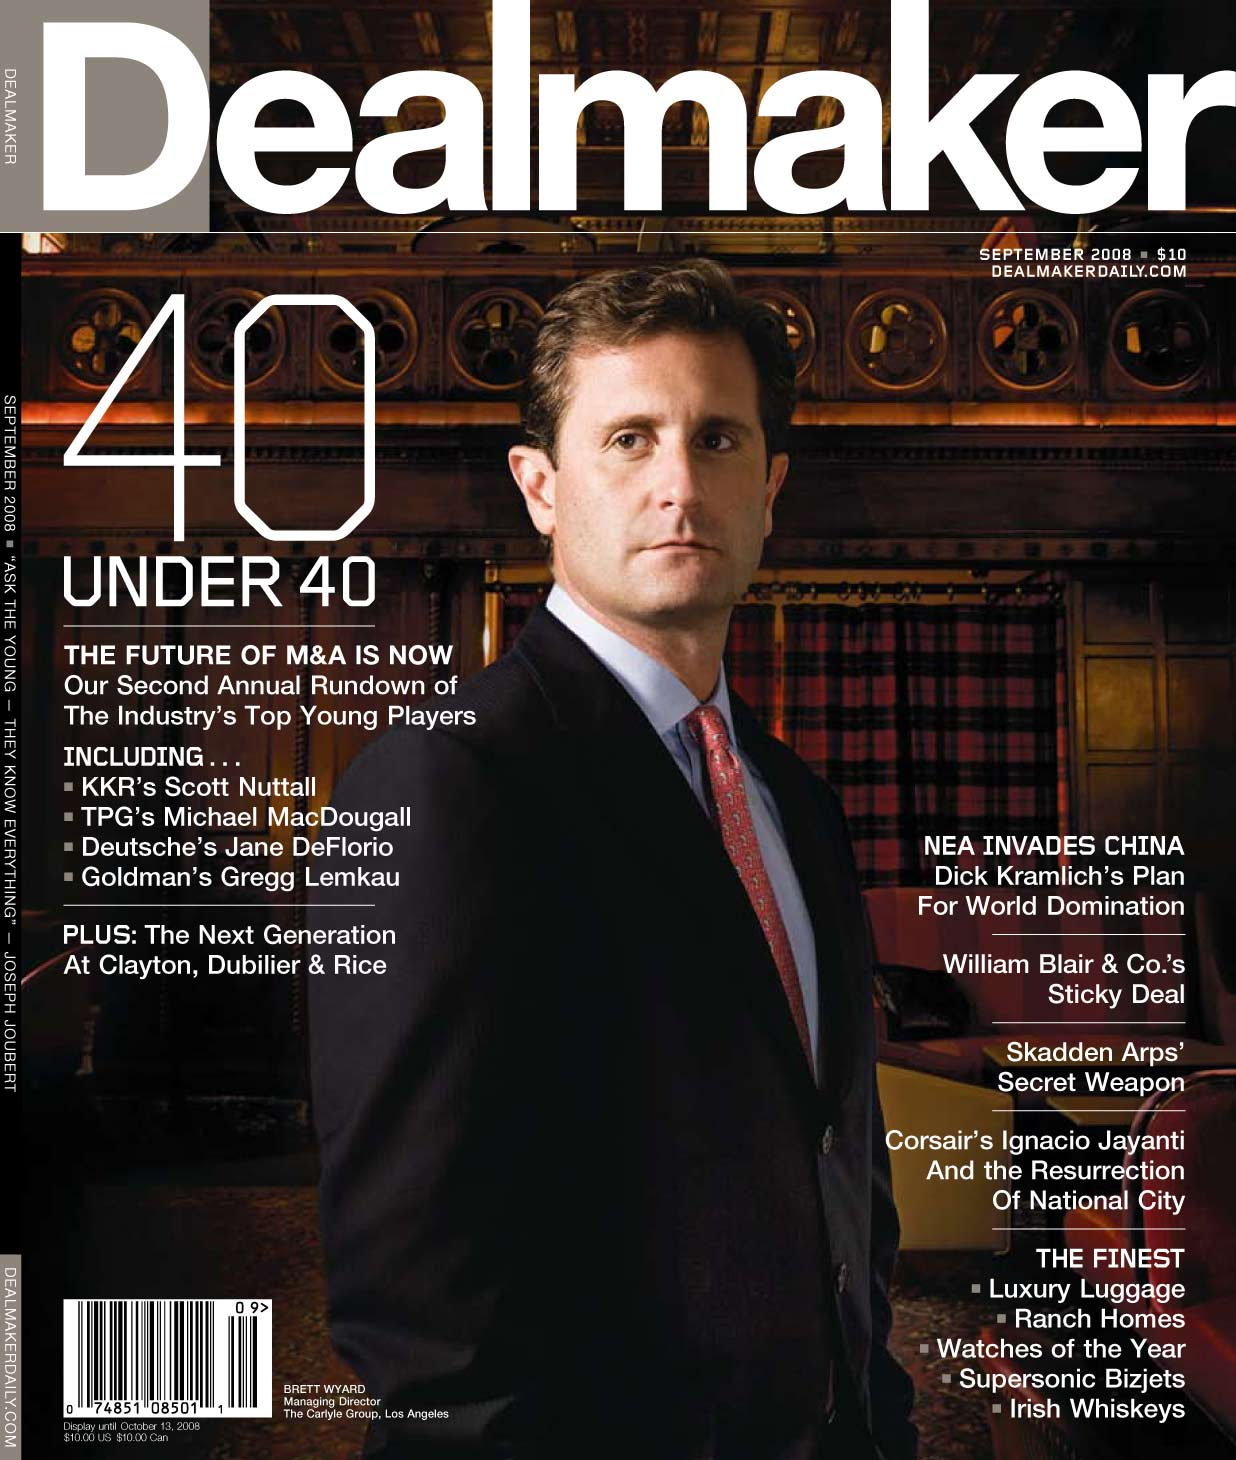 web_Dealmaker_cover.jpg